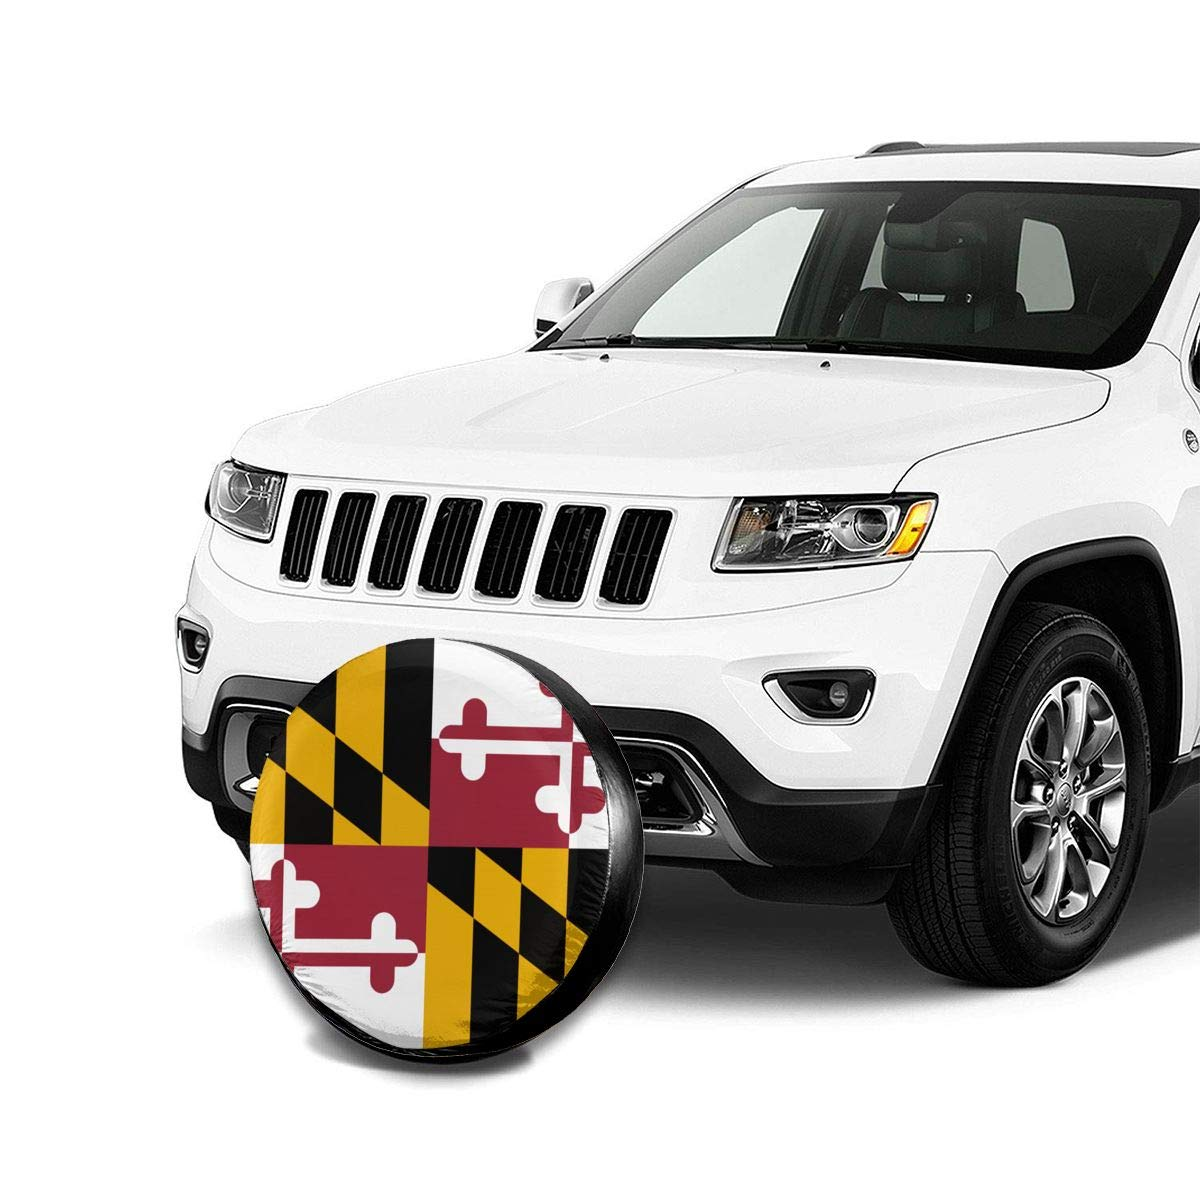 JT270 Modern Style Dustproof and Waterproof Spare Tire Cover,Flag of Maryland Universal Tire Covers for Jeep,Trailers,Rvs,Suvs,Trucks and Many Vehicles 14,15,16,17 Inch